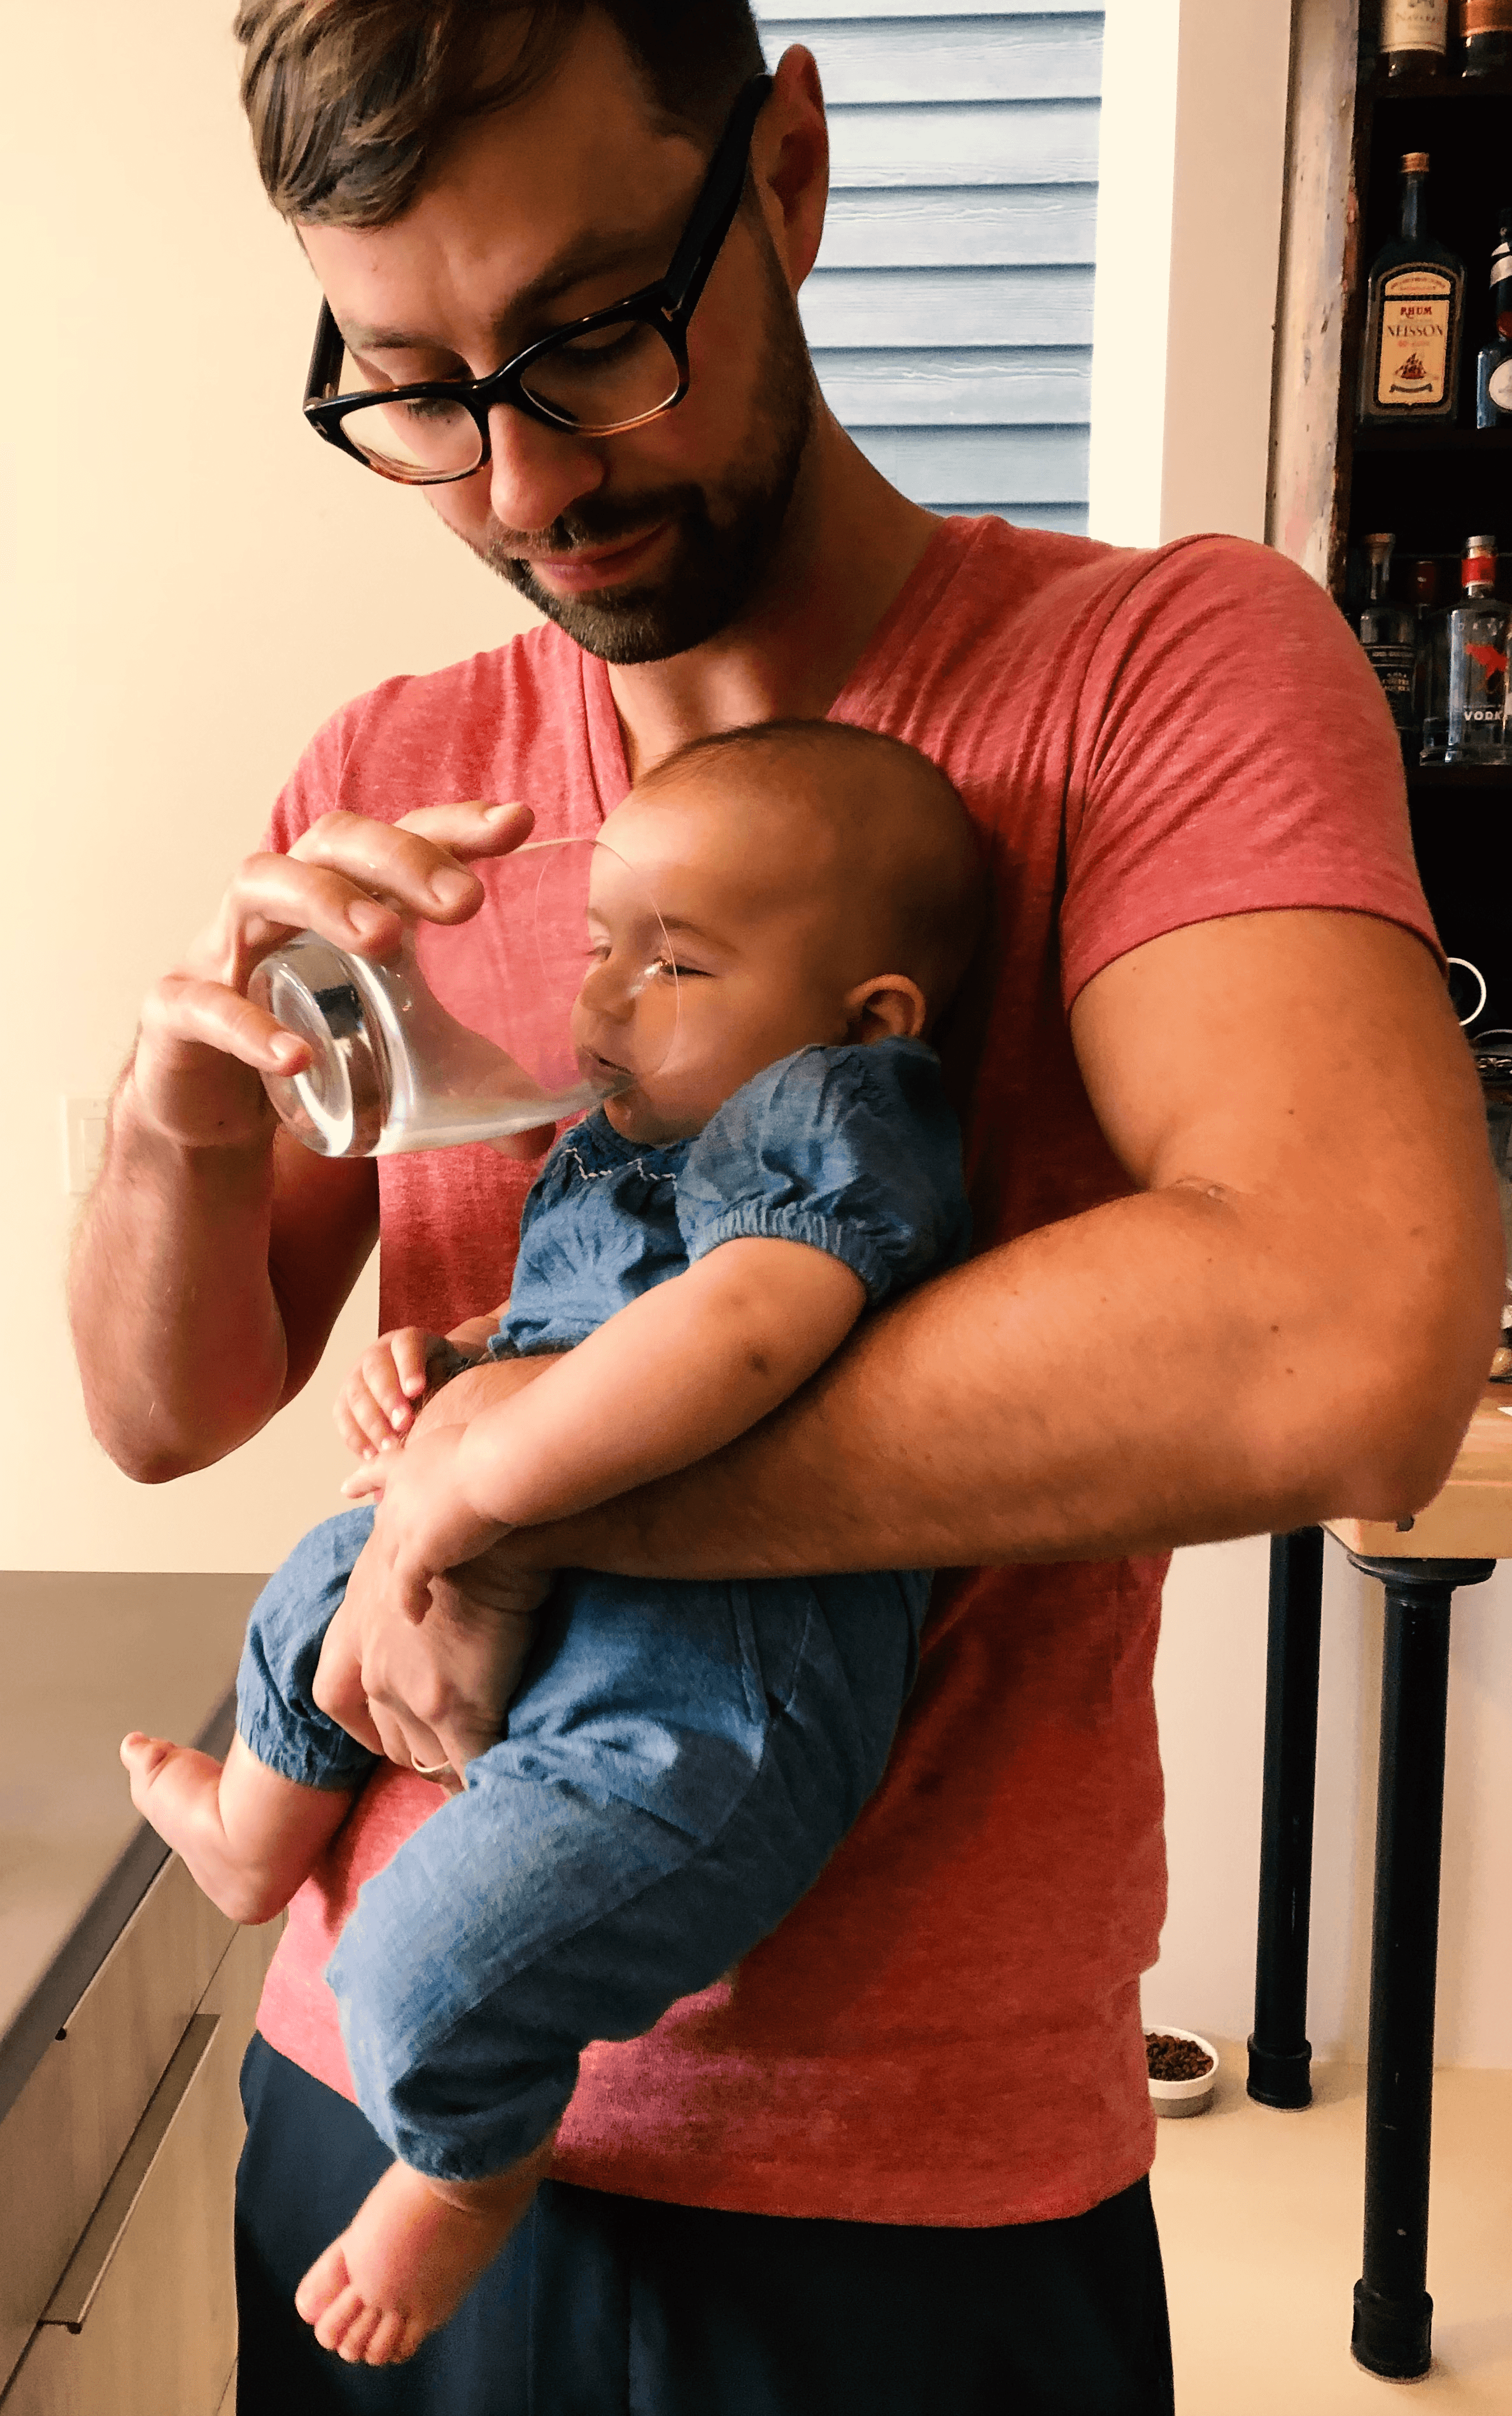 dad giving water to his child